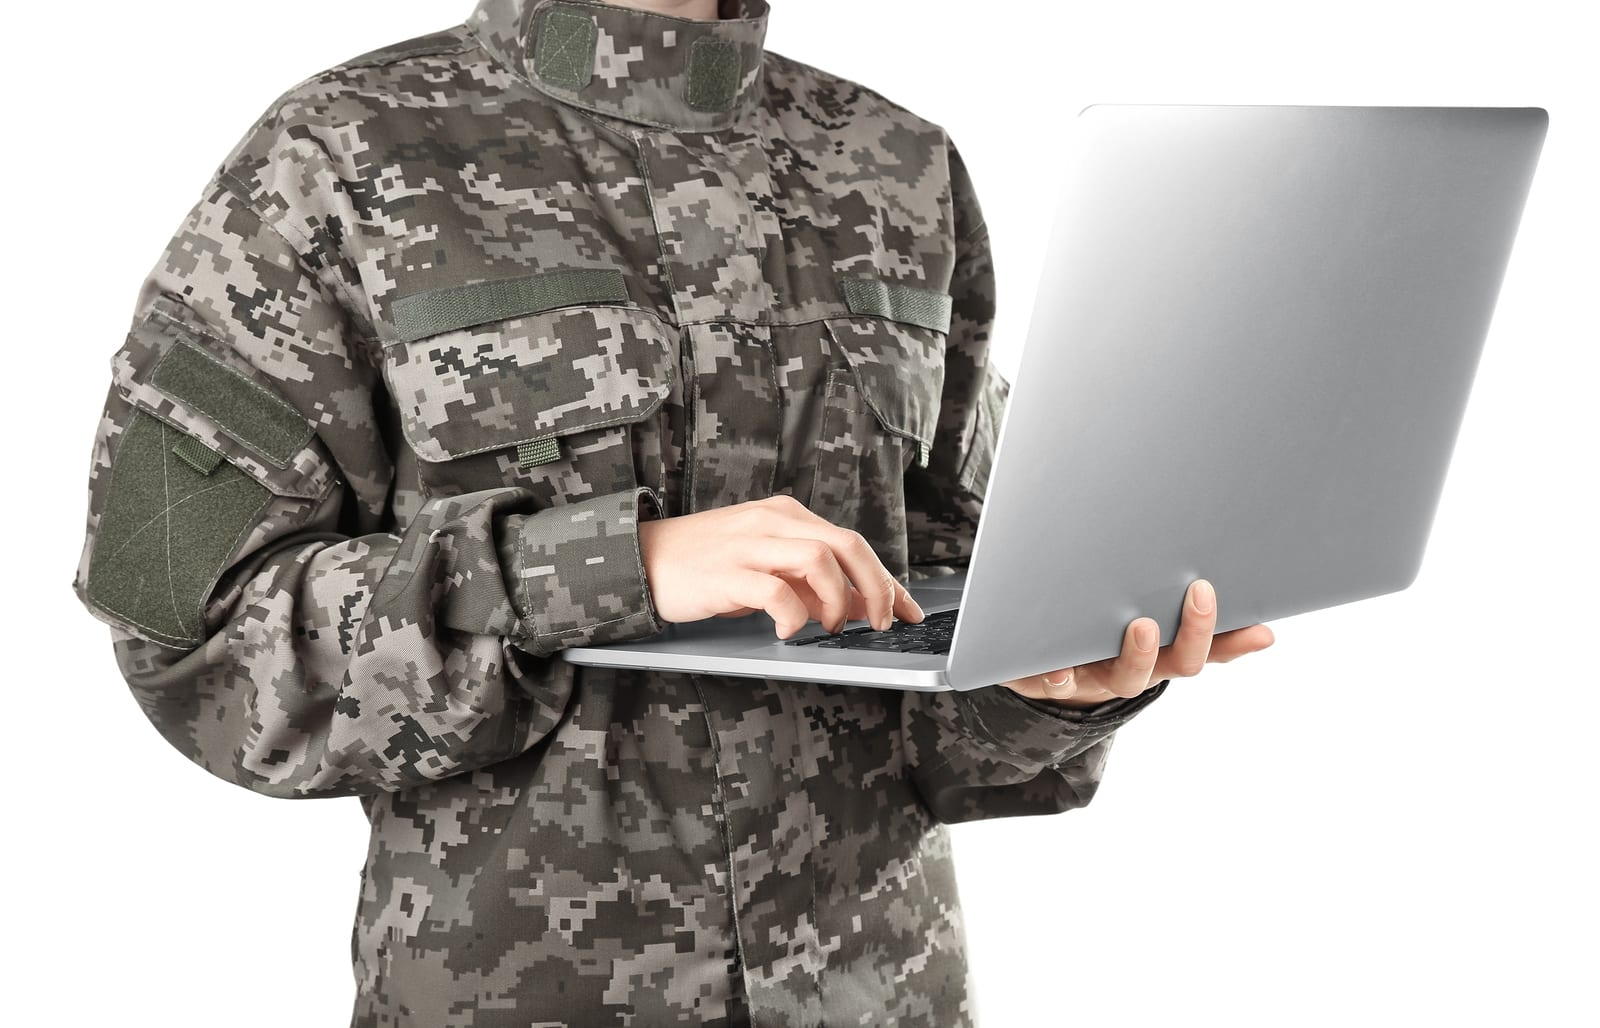 Soldier using encrypted communications